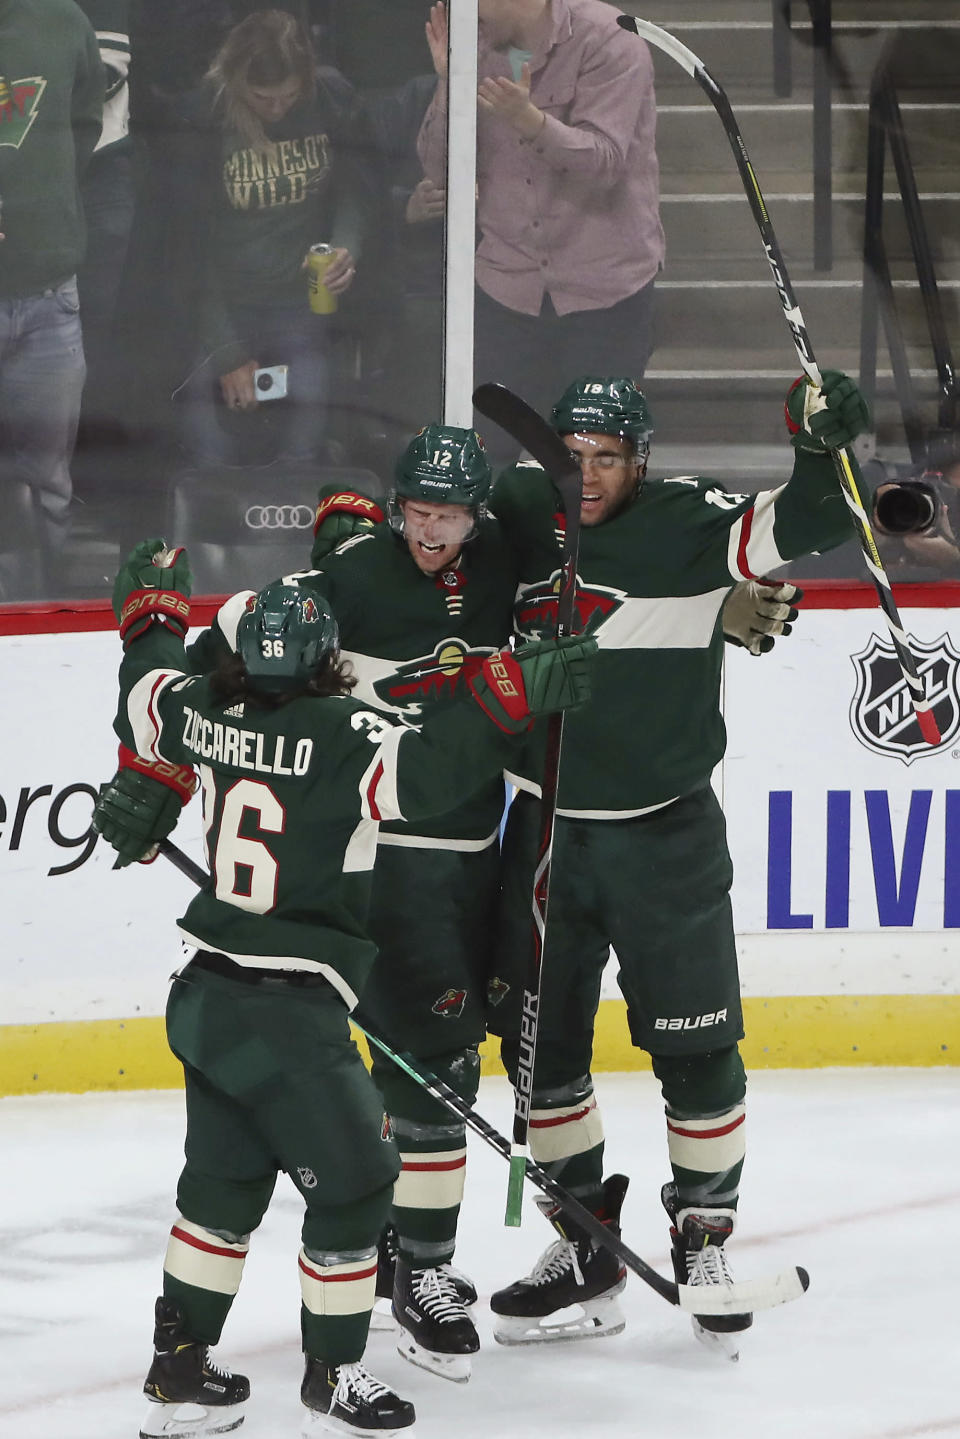 Minnesota Wild's Eric Staal, center, celebrates with Mats Zuccarello, left, and Jordan Greenway, right, after Staal scored a goal against Edmonton during the first period of an NHL hockey game Tuesday, Oct. 22, 2019, in St. Paul, Minn. (AP Photo/Stacy Bengs)